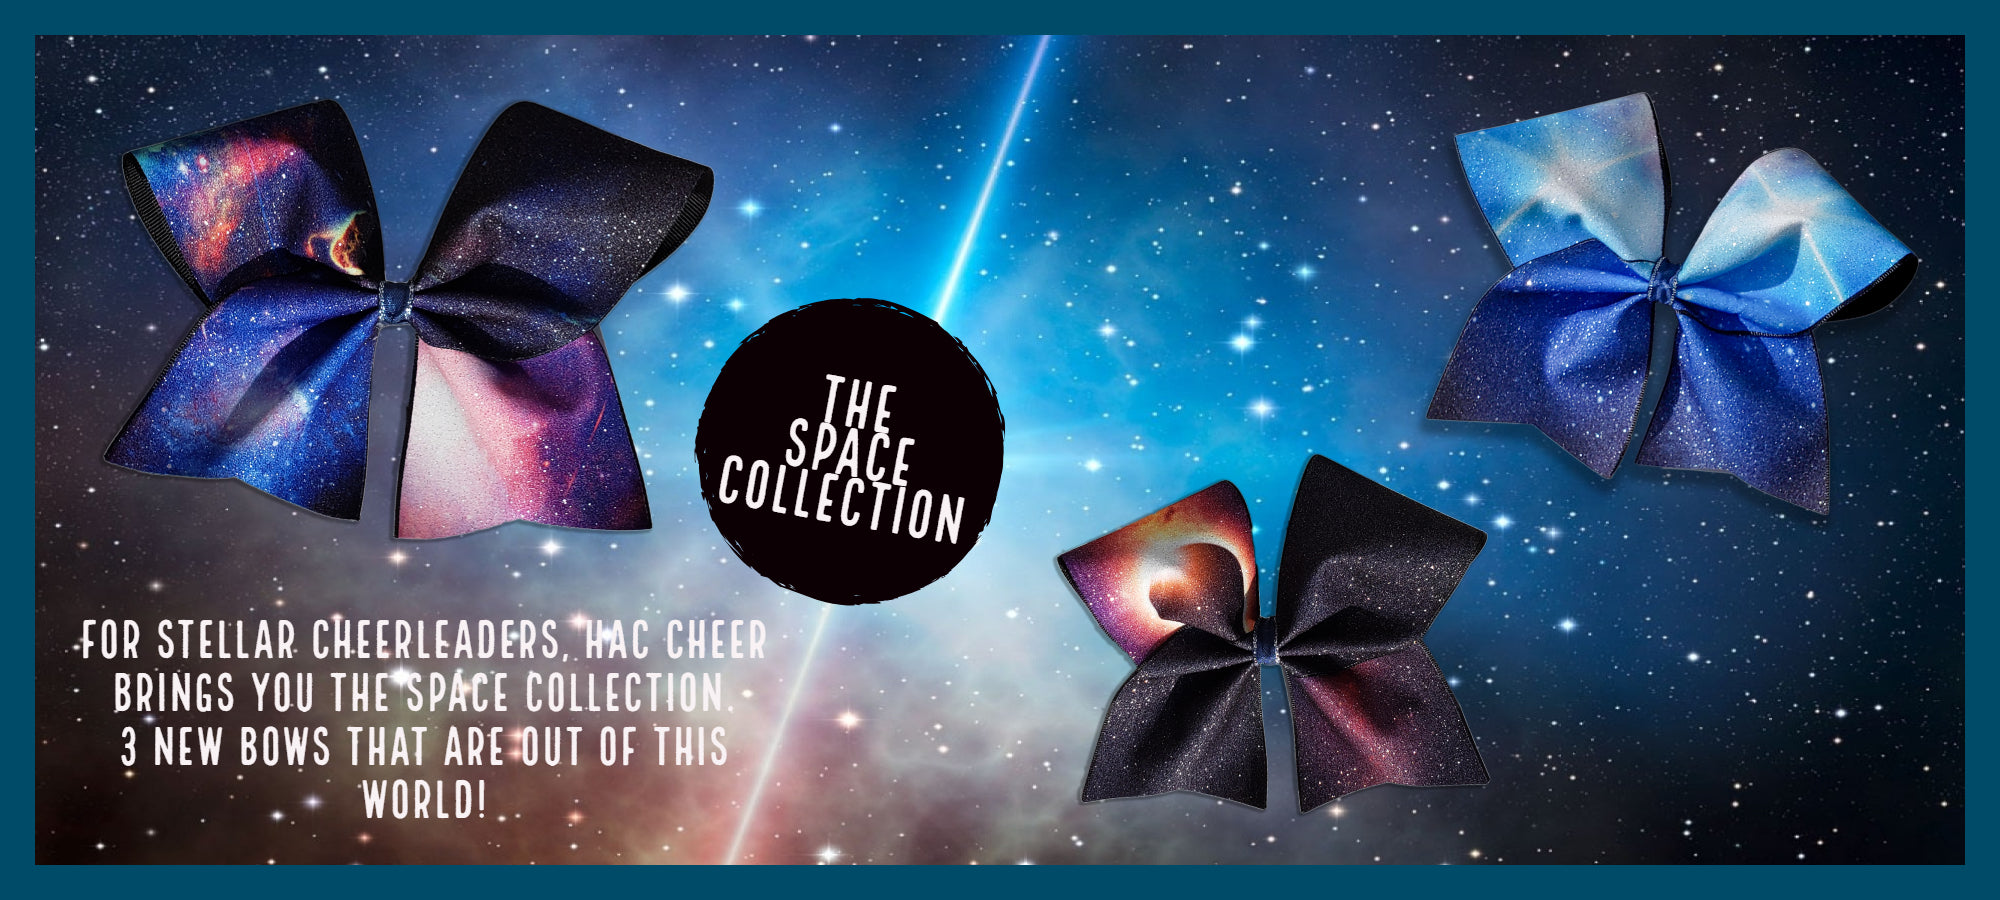 For stellar Cheerleaders, HAC Cheer brings you the Space Collection.  3 new bows that are out of this world!